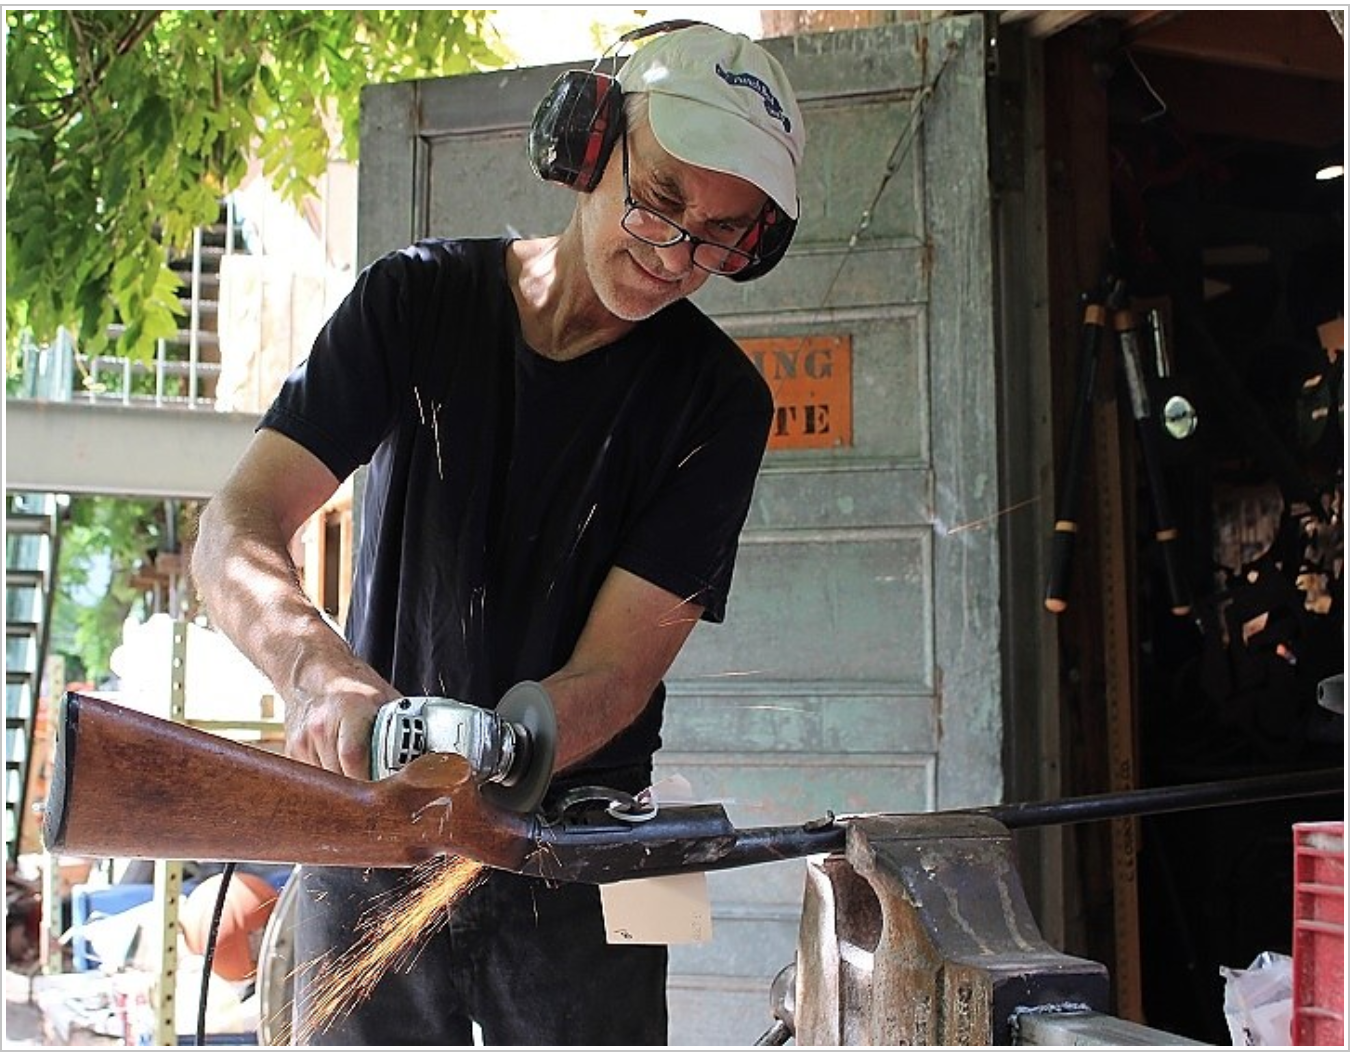 Local sculptor Gar Waterman tears into a donated gun in the garden behind his Westville studio on Monday morning.